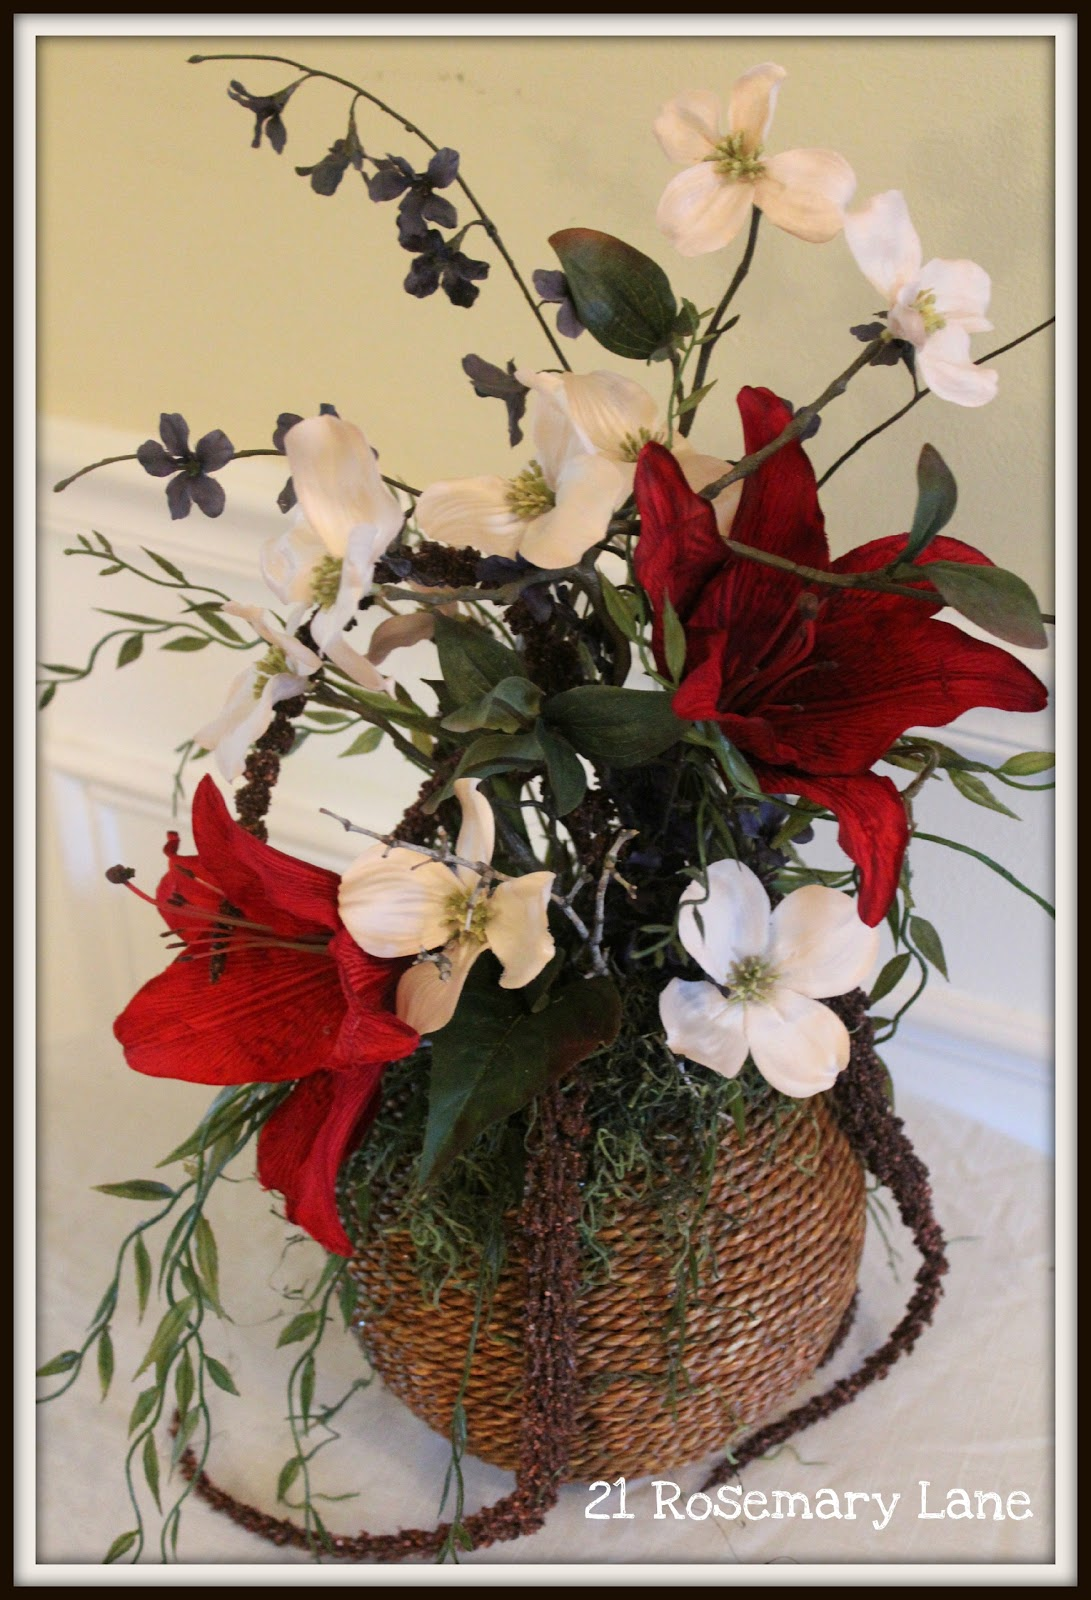 21 rosemary lane birthday gift silk floral arrangement plus donna selected this beautiful woven container for her arrangement and decided she wanted to stick with neutral flowers and just add a pop of color mightylinksfo